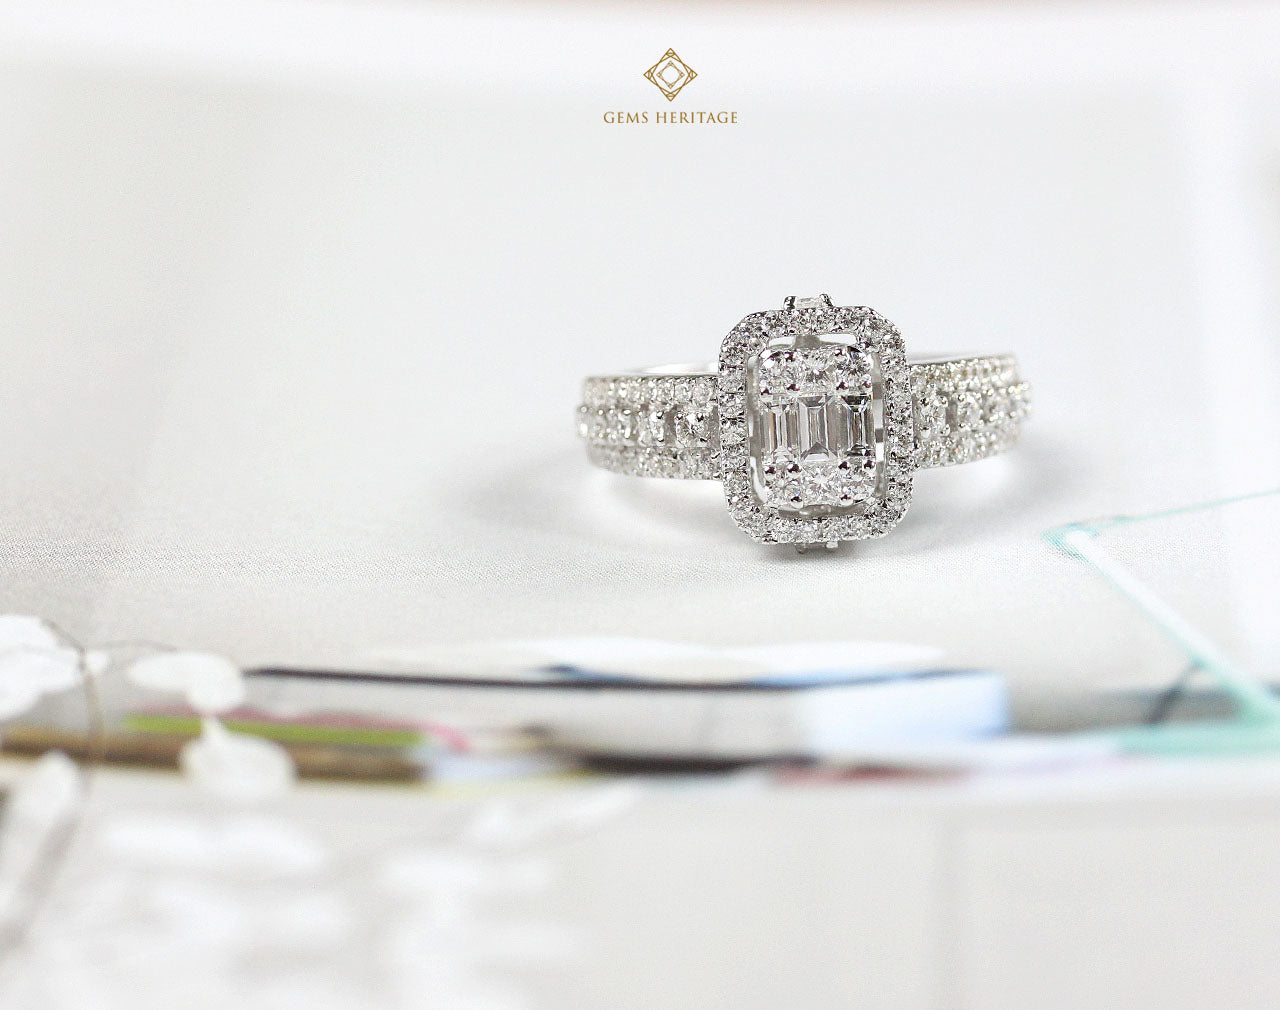 Delicated emerald cut illusion ring